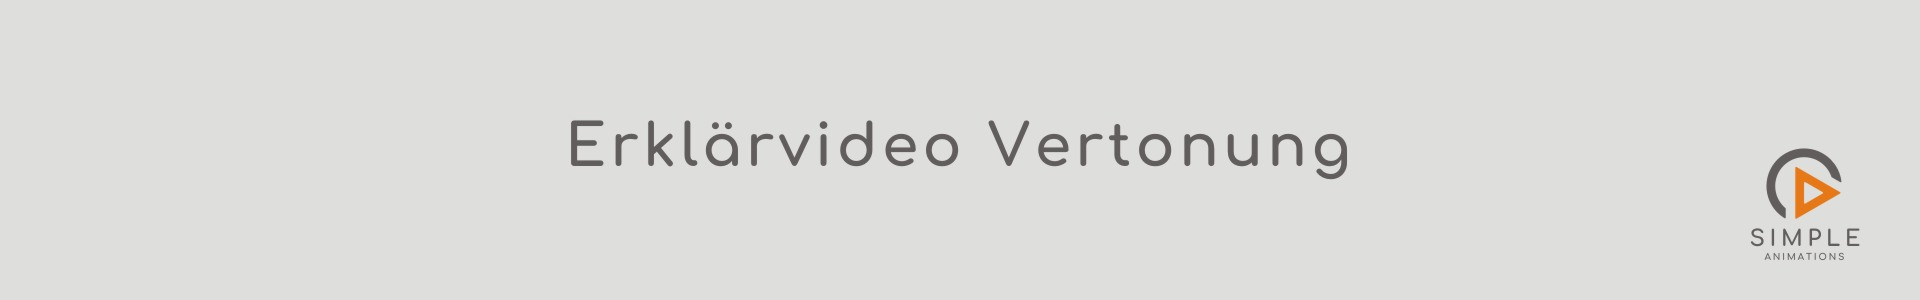 Erklaervideo Vertonung Tonaufnahme Simple Animations